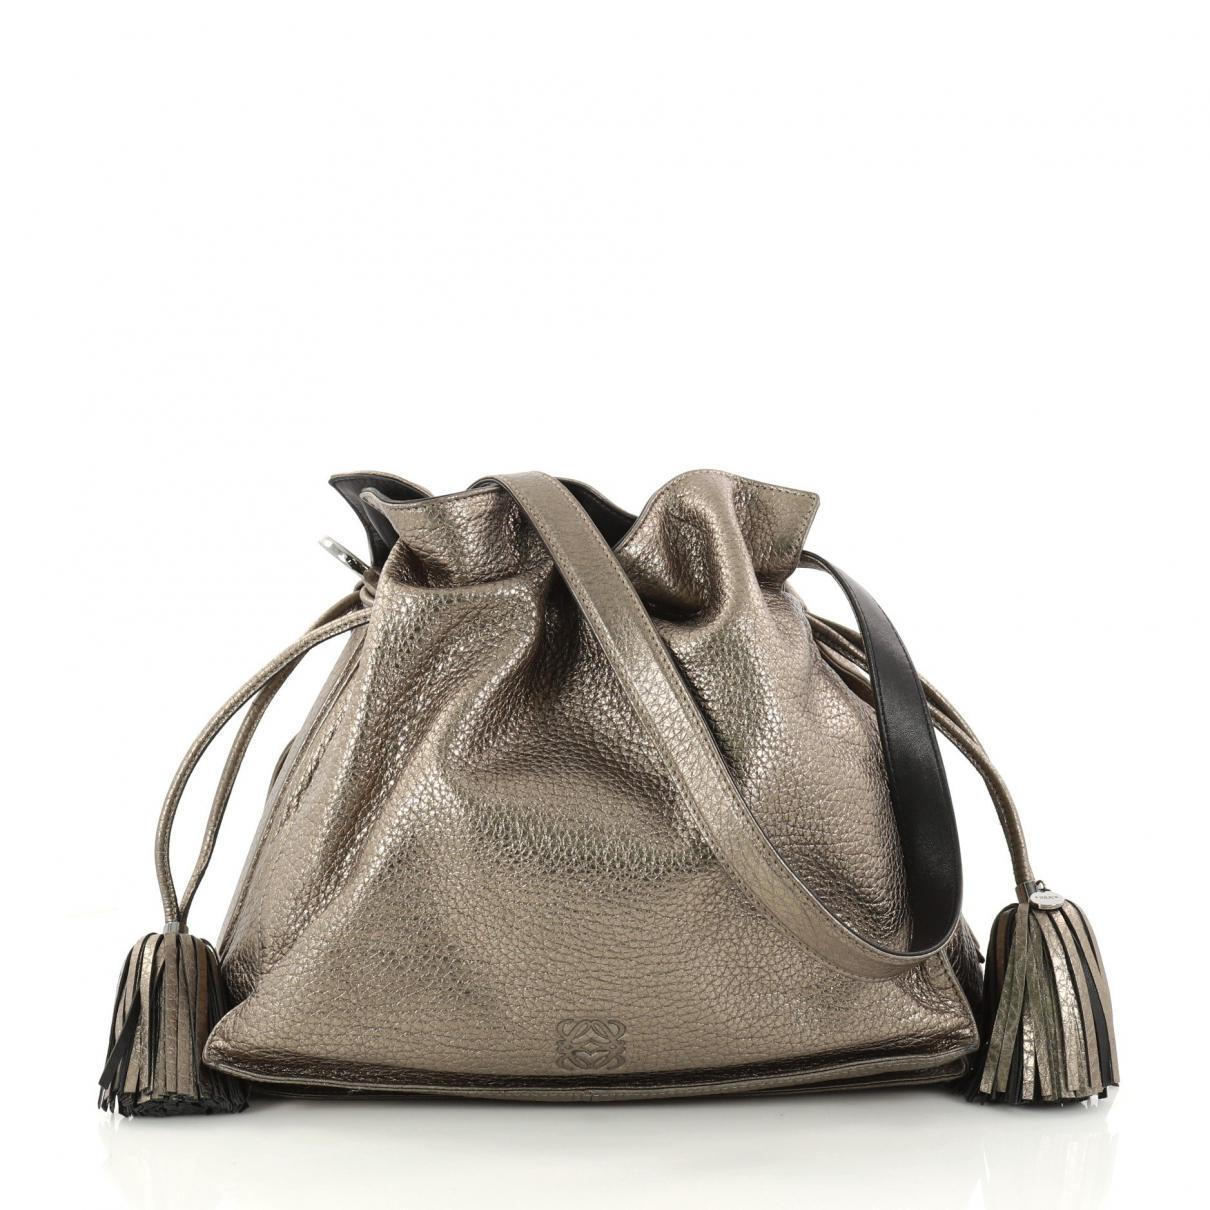 Pre-owned - Leather handbag Loewe Cheap Very Cheap Outlet Official Ekkrv6BH